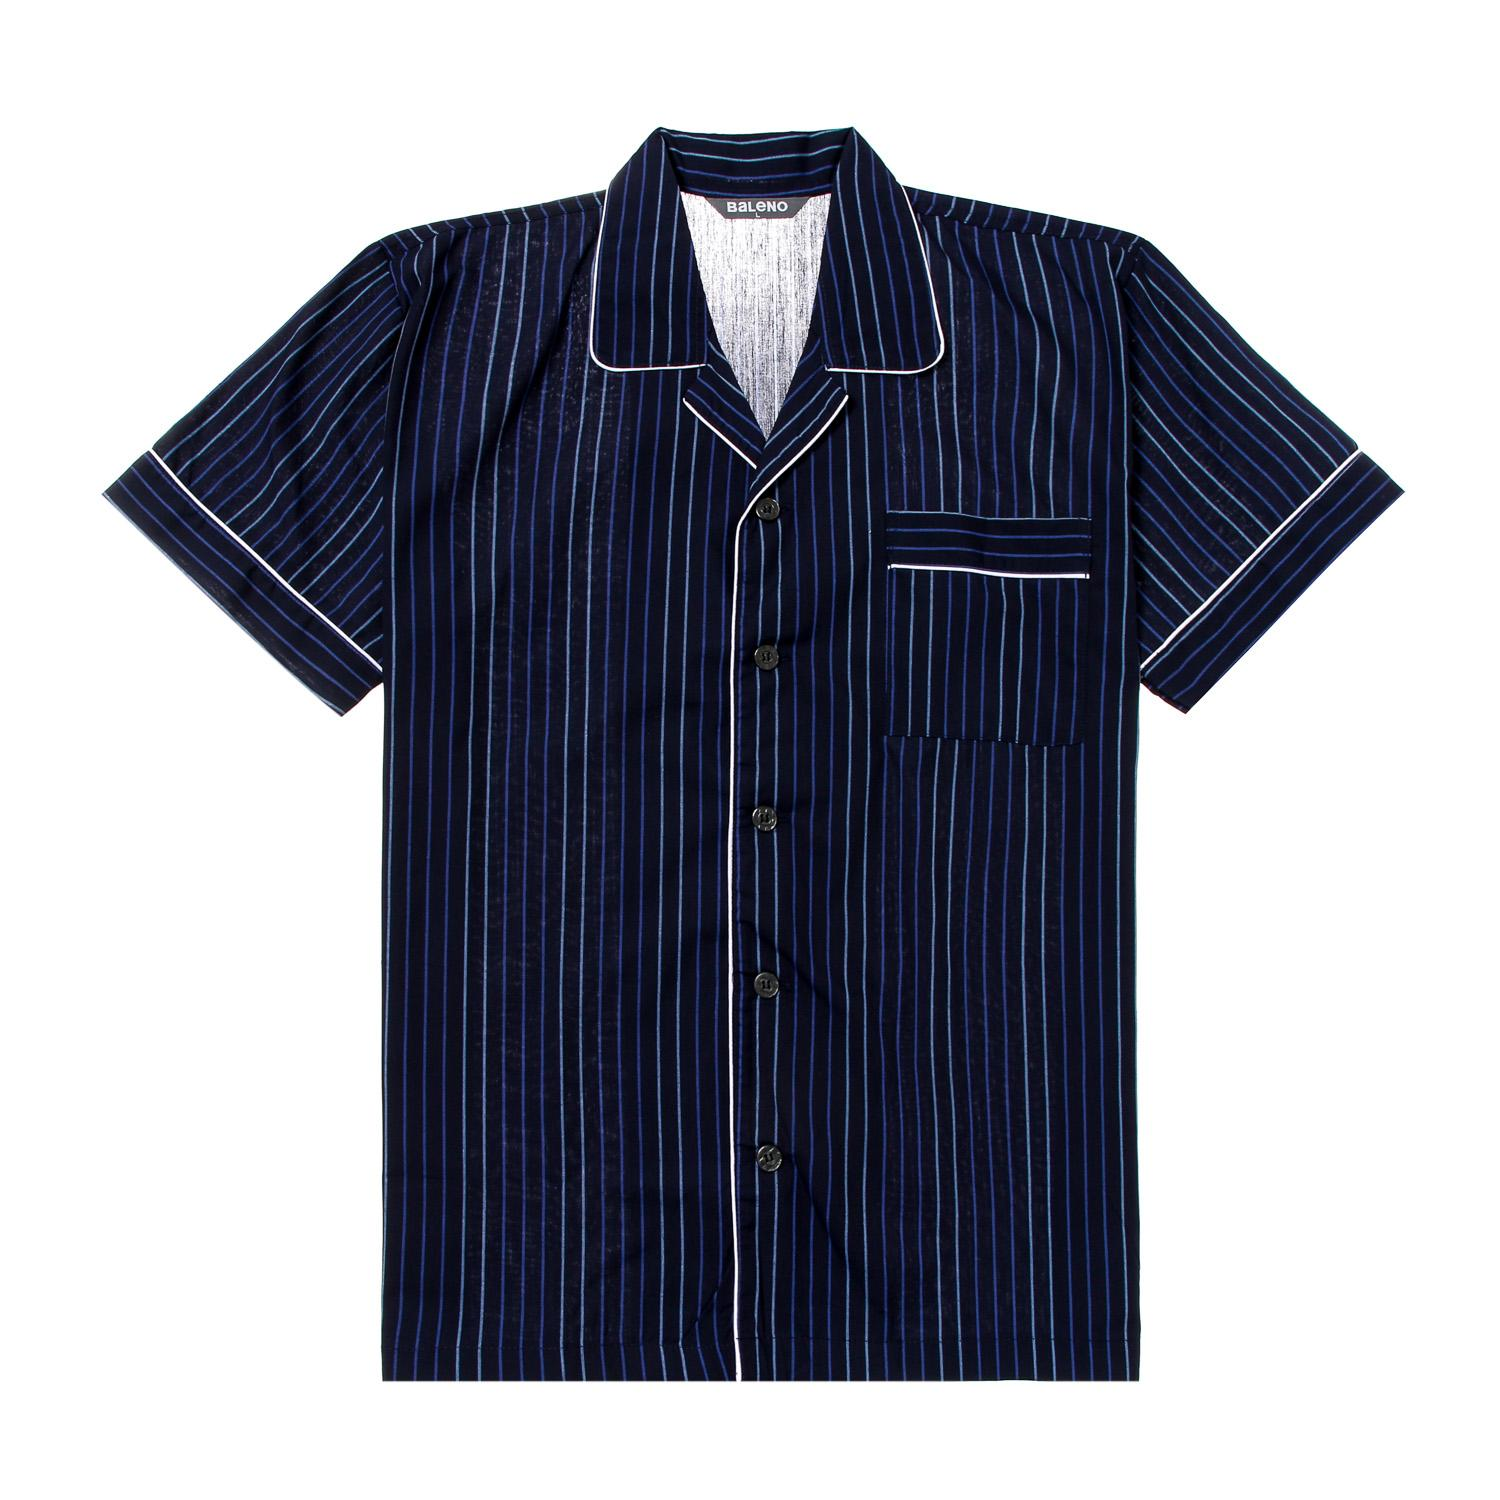 62283d137367ae Pajamas for Men for sale - Mens Pajamas Online Deals & Prices in ...